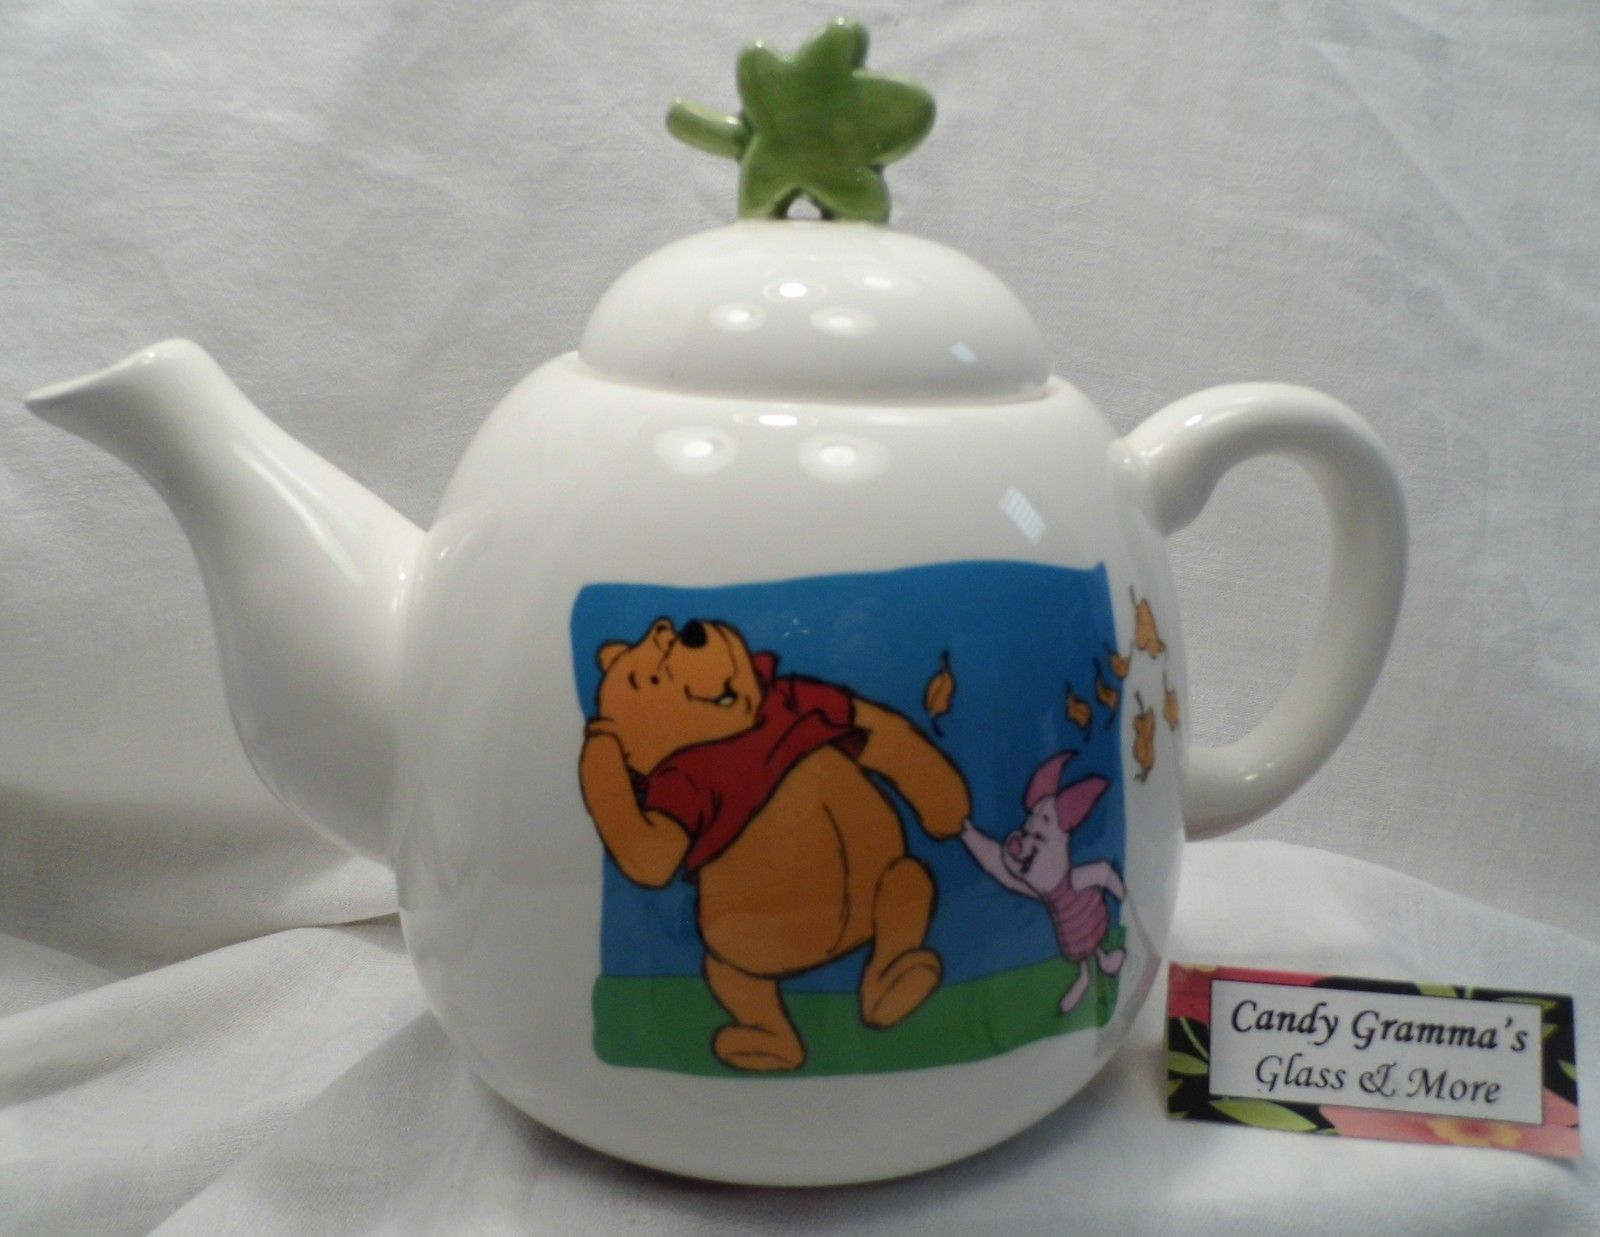 Collectible Disney Winnie the Pooh and Piglet tea pot by Teasure